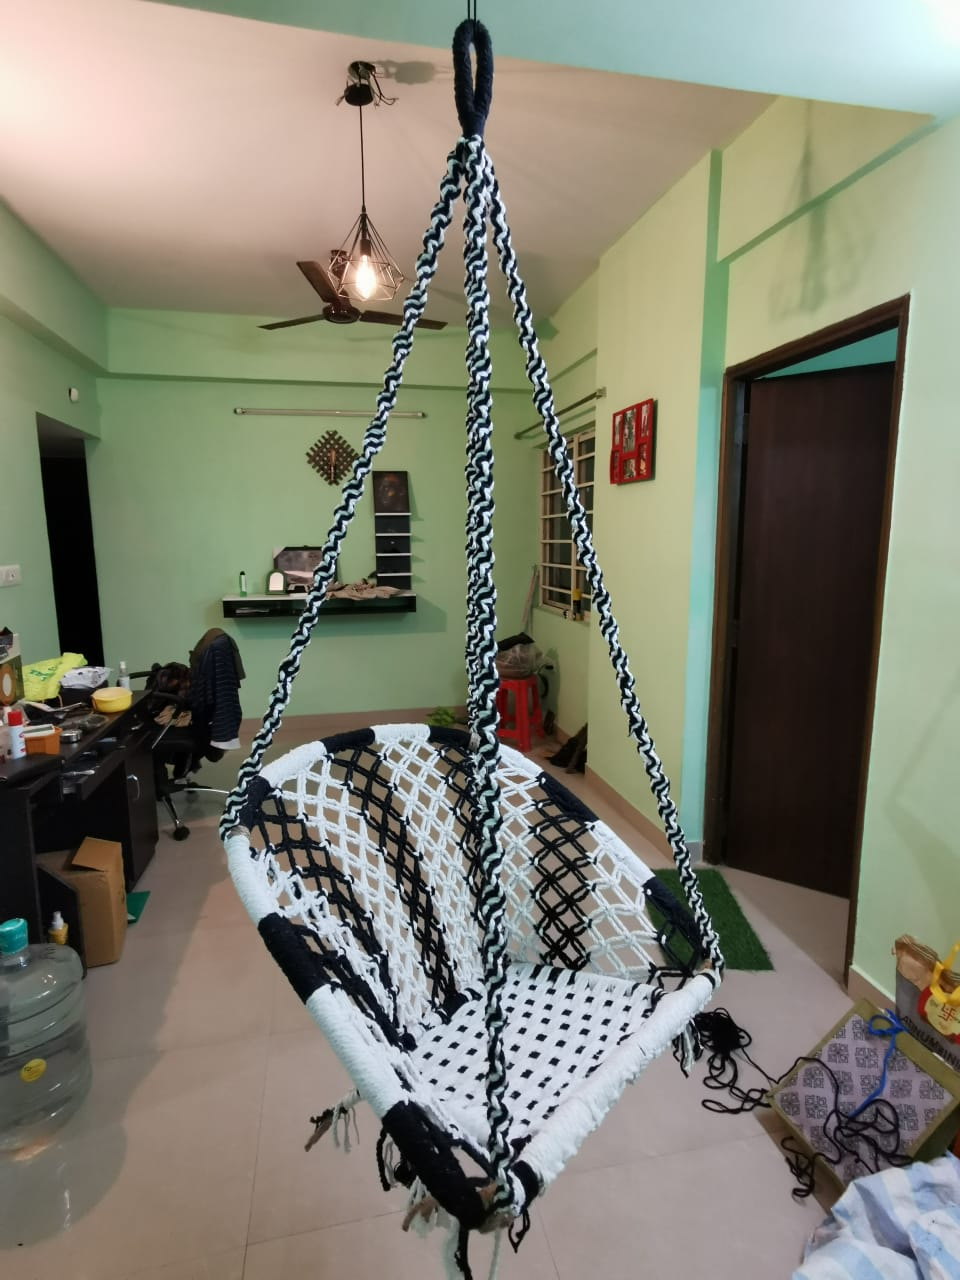 black-and-white-d-shaped-hanging-cotton-swing